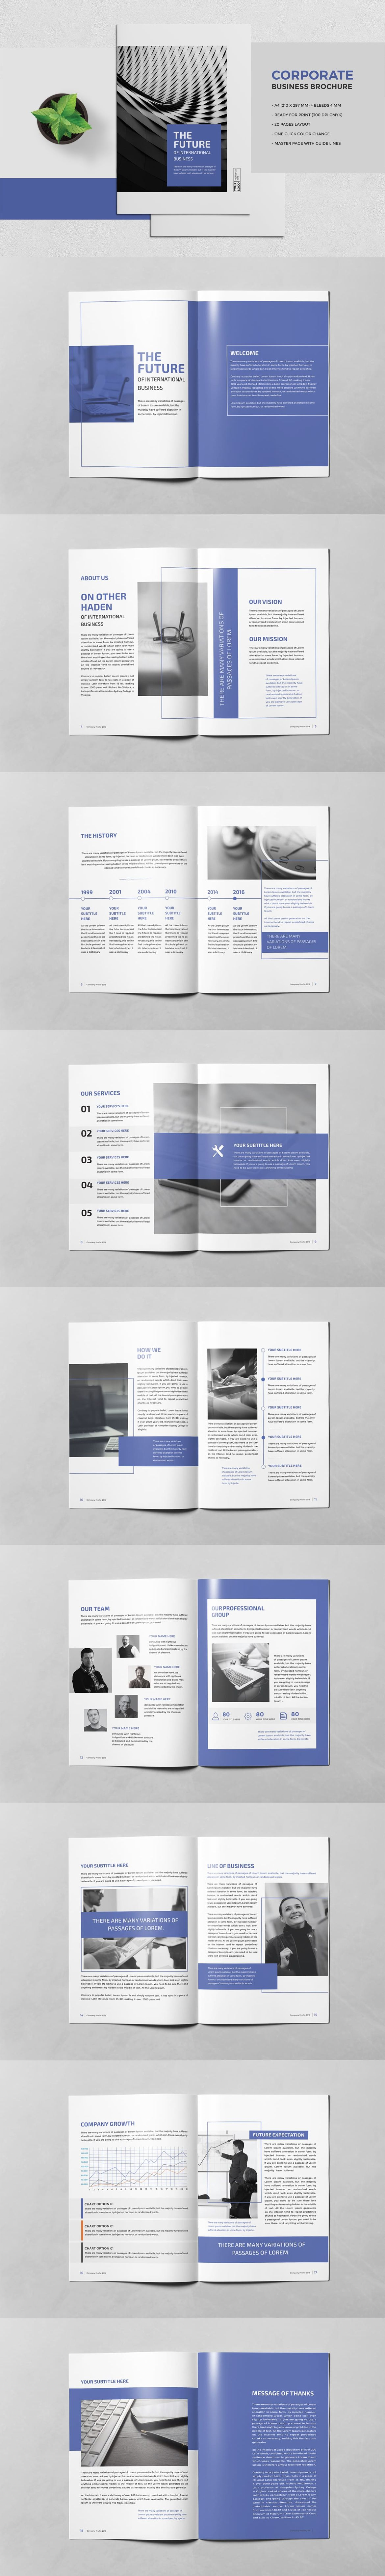 Get an attractive trifold or bifold brochure design Within